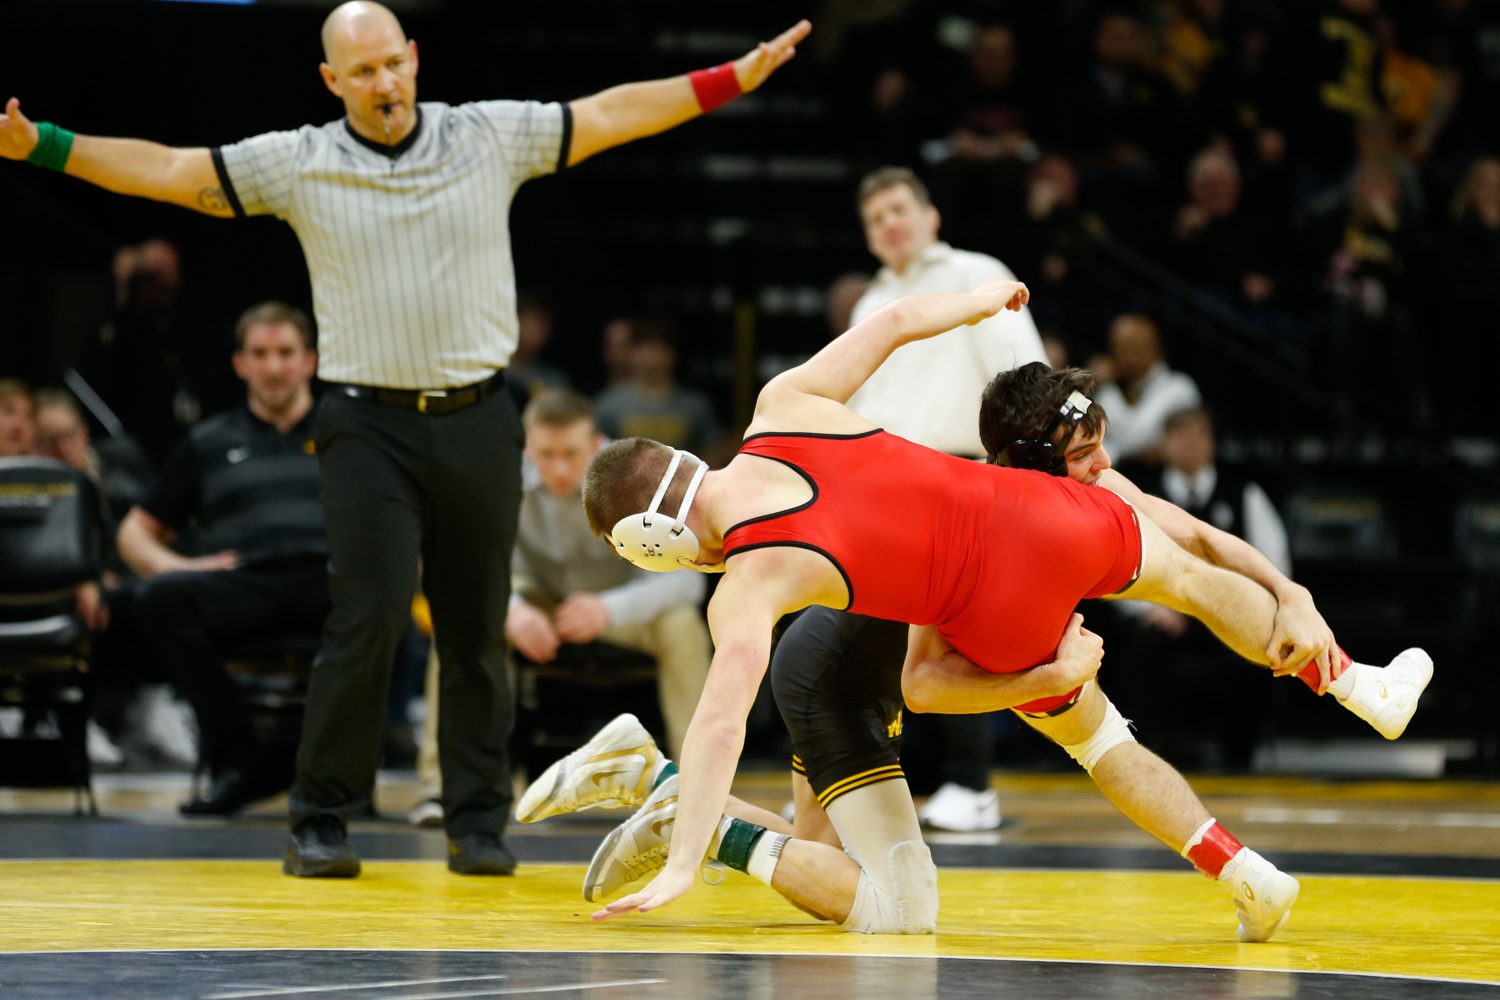 Iowa Wrestler Paul Glynn grapples with Maryland Wrestler Orion Anderson in the 133lb weight class match during a wrestling dual meet at Carver-Hawkeye Arena on Friday, Feb. 8, 2019. Glynn won via pin at 1:46 and the Hawkeyes defeated the Terrapins 48-0.